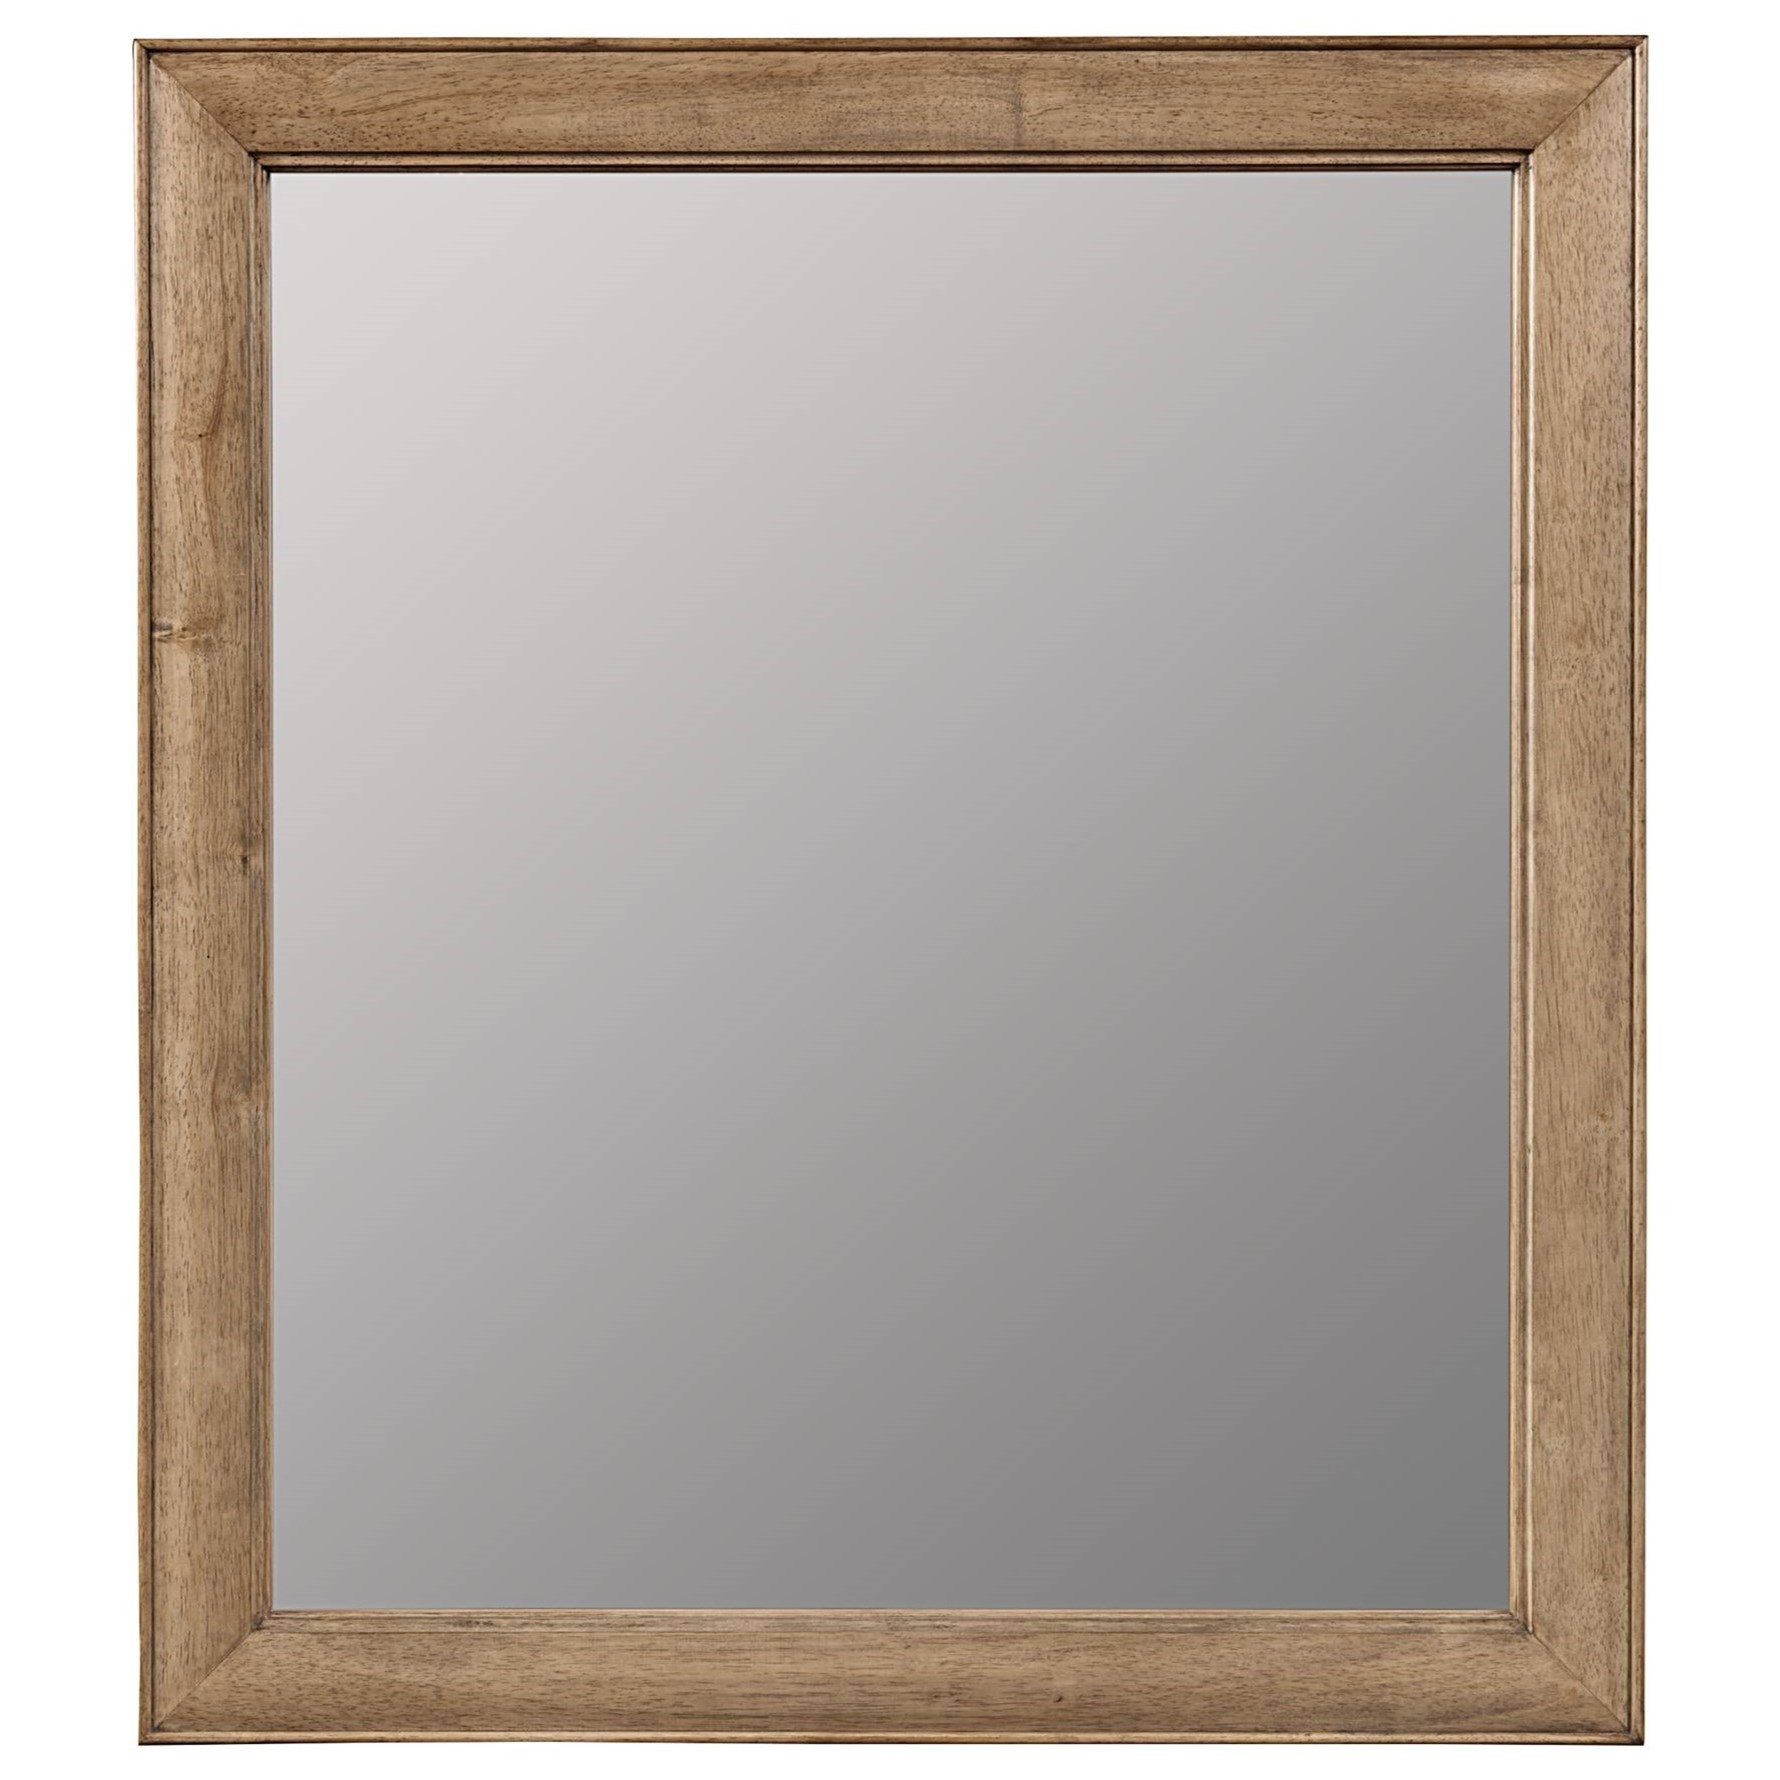 Stone & Leigh Furniture Chelsea Square Mirror - Item Number: 584-63-30